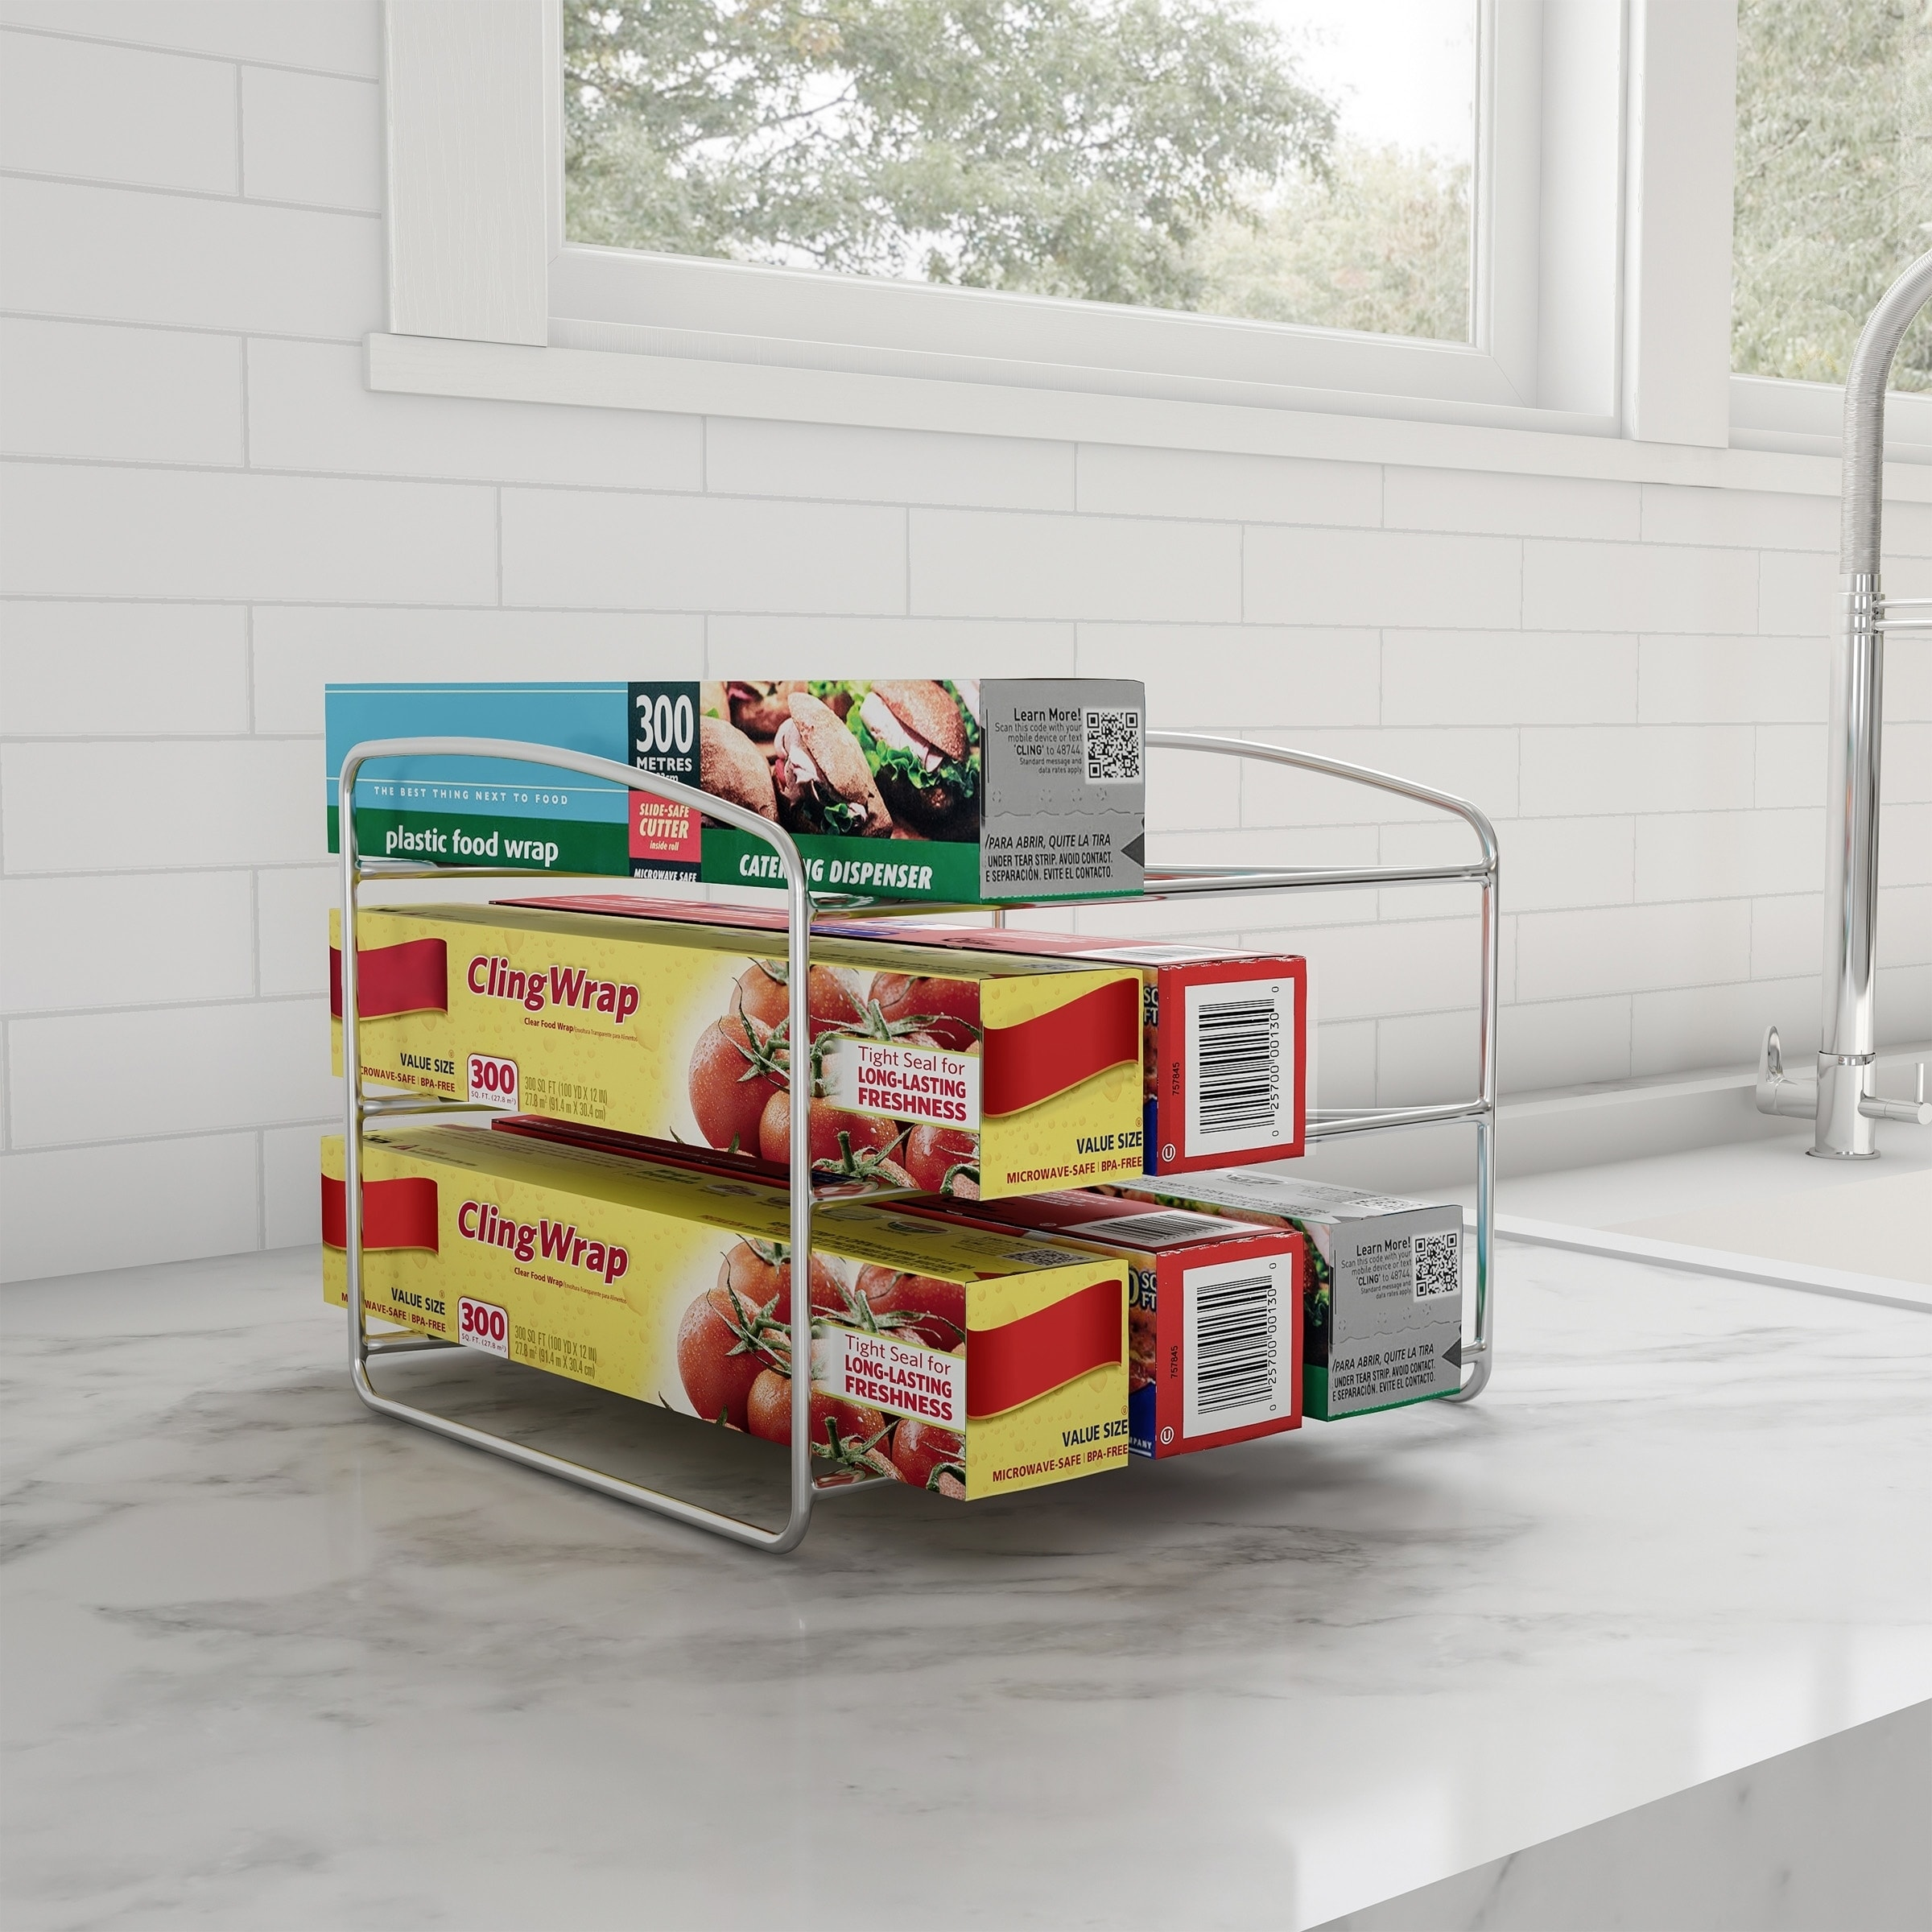 3 Tier Kitchen Pantry Organizer For Foil Plastic Bags Parchment Paper Holder Cabinet Organization By Lavish Home Overstock 27973114